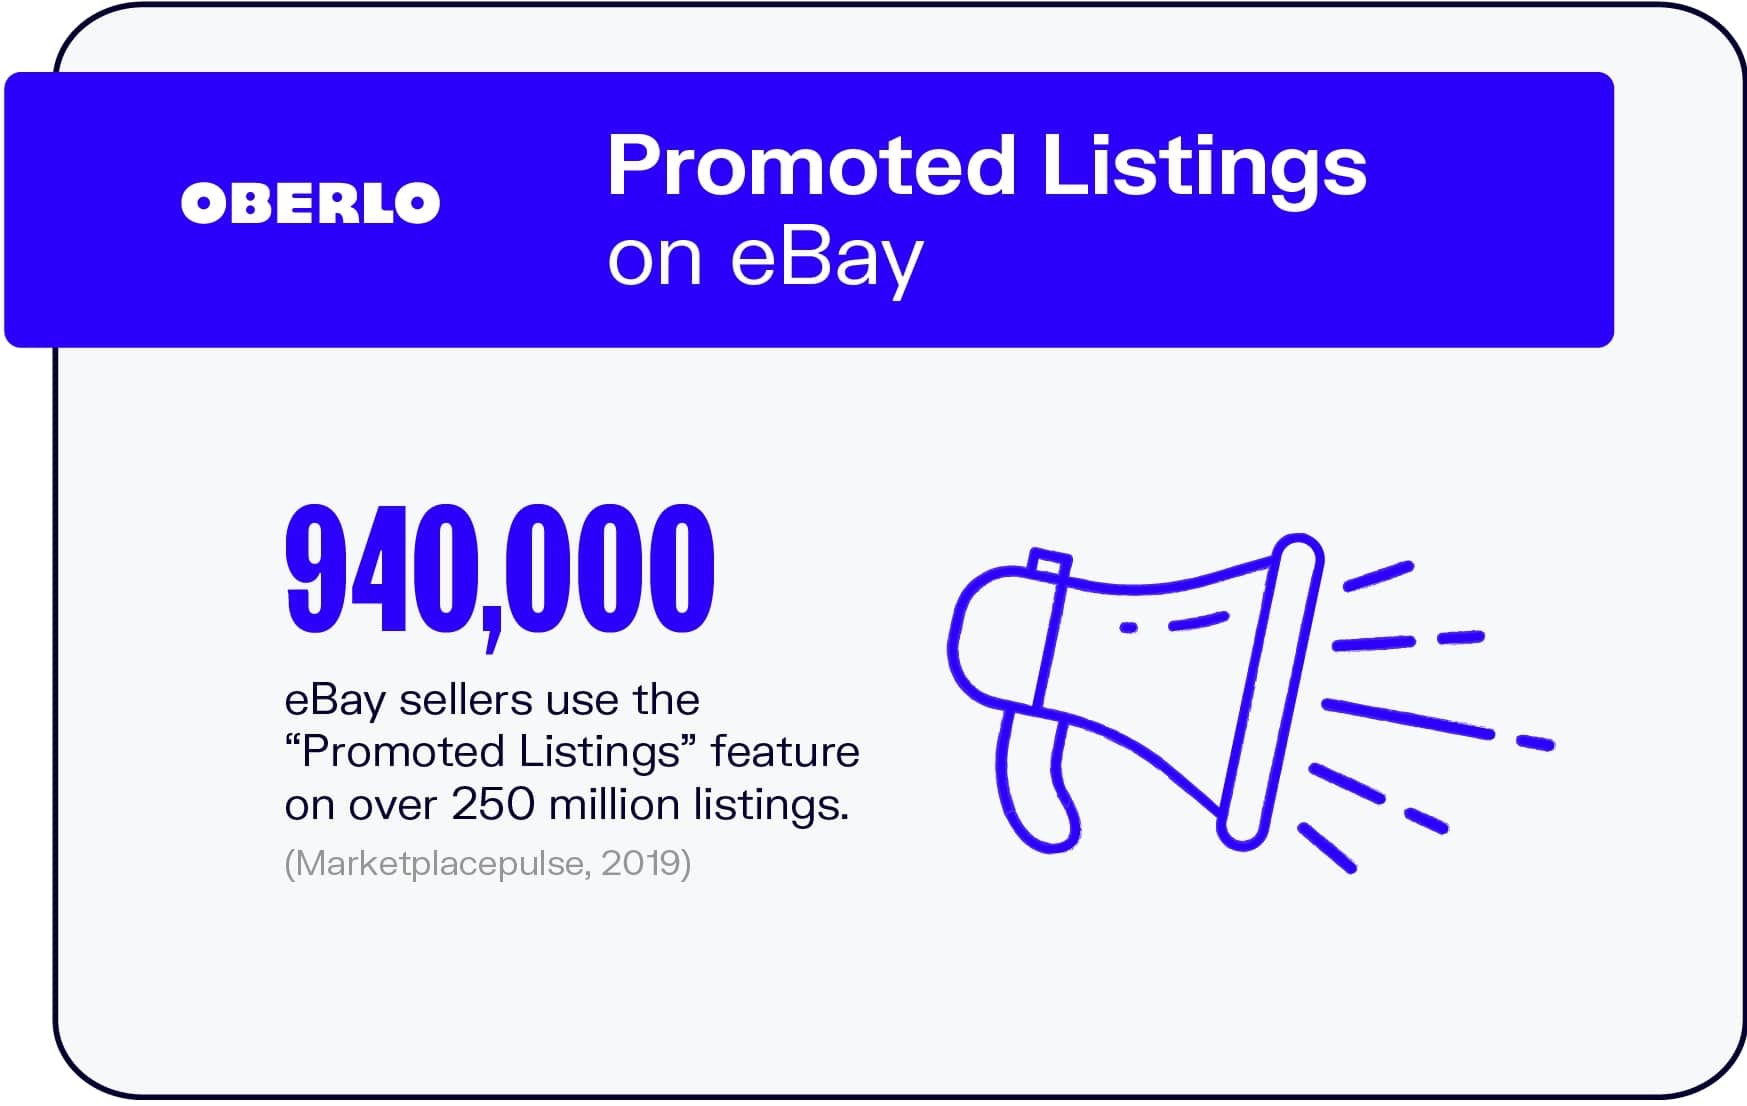 Promoted Listings on eBay